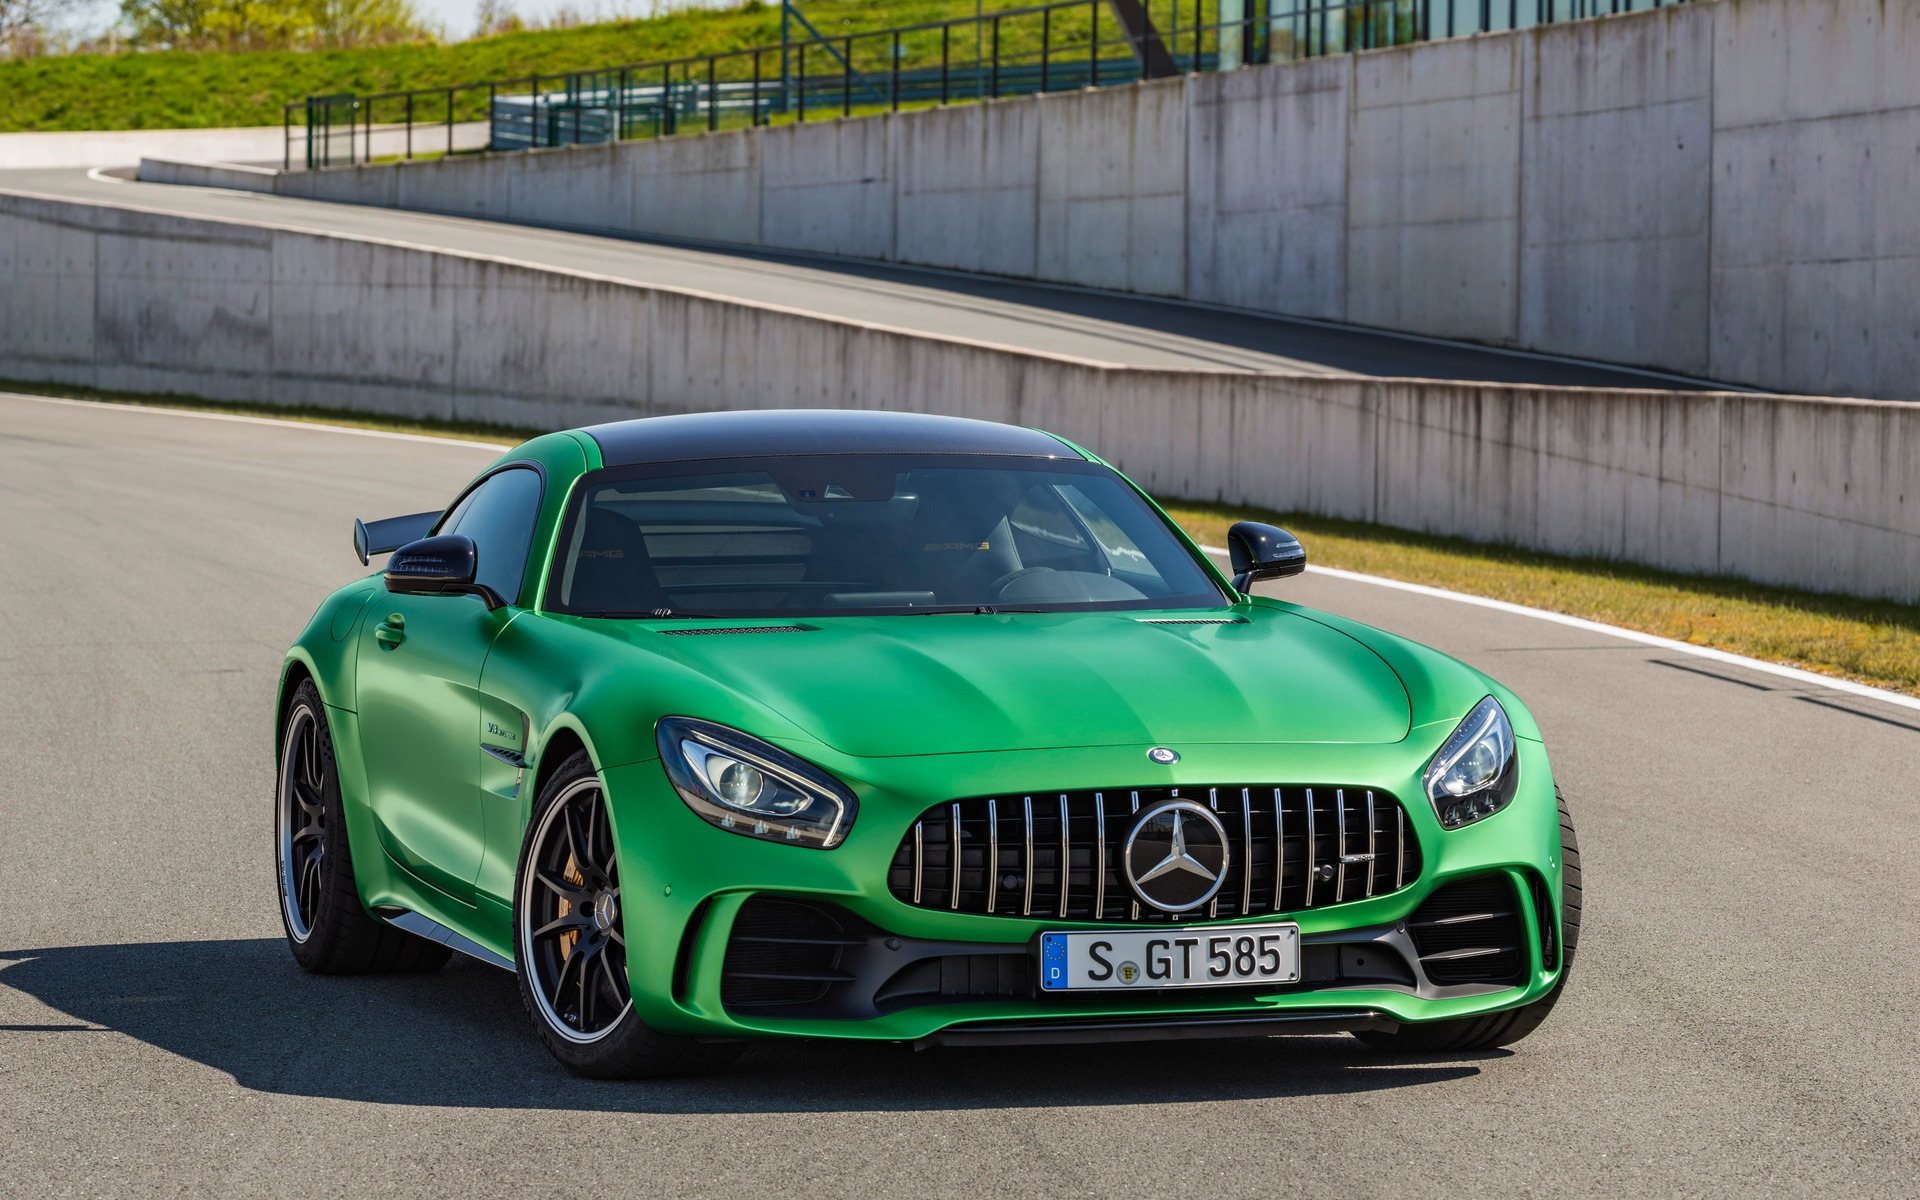 verte pour conqu rir l enfer vert voici la mercedes amg gt r guide auto. Black Bedroom Furniture Sets. Home Design Ideas